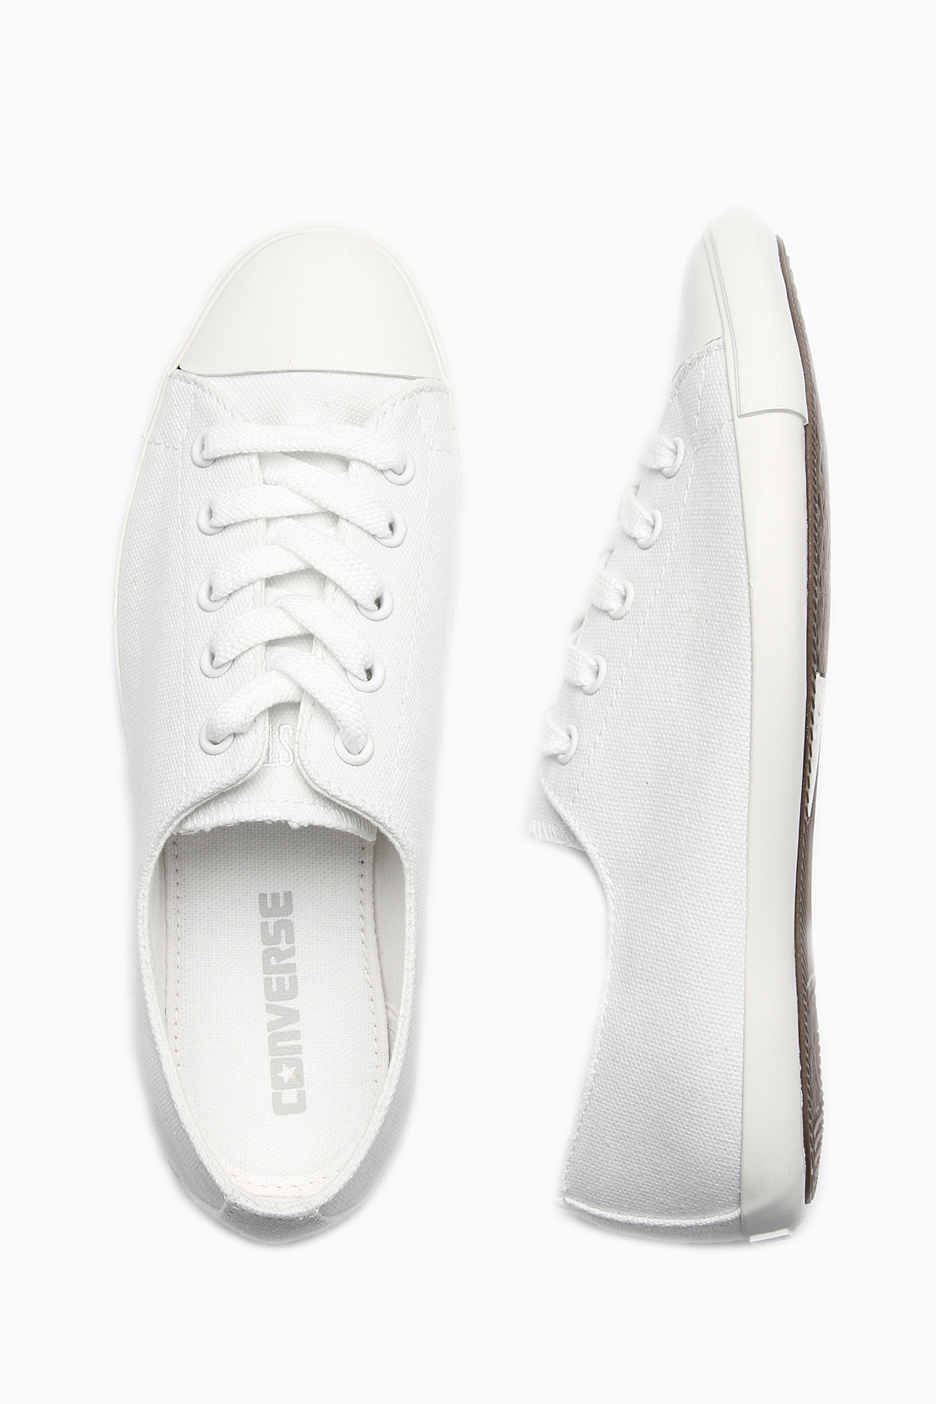 7f848d2b083 Converse - All Star Light OX White - Girl Shoes - Impericon.com US